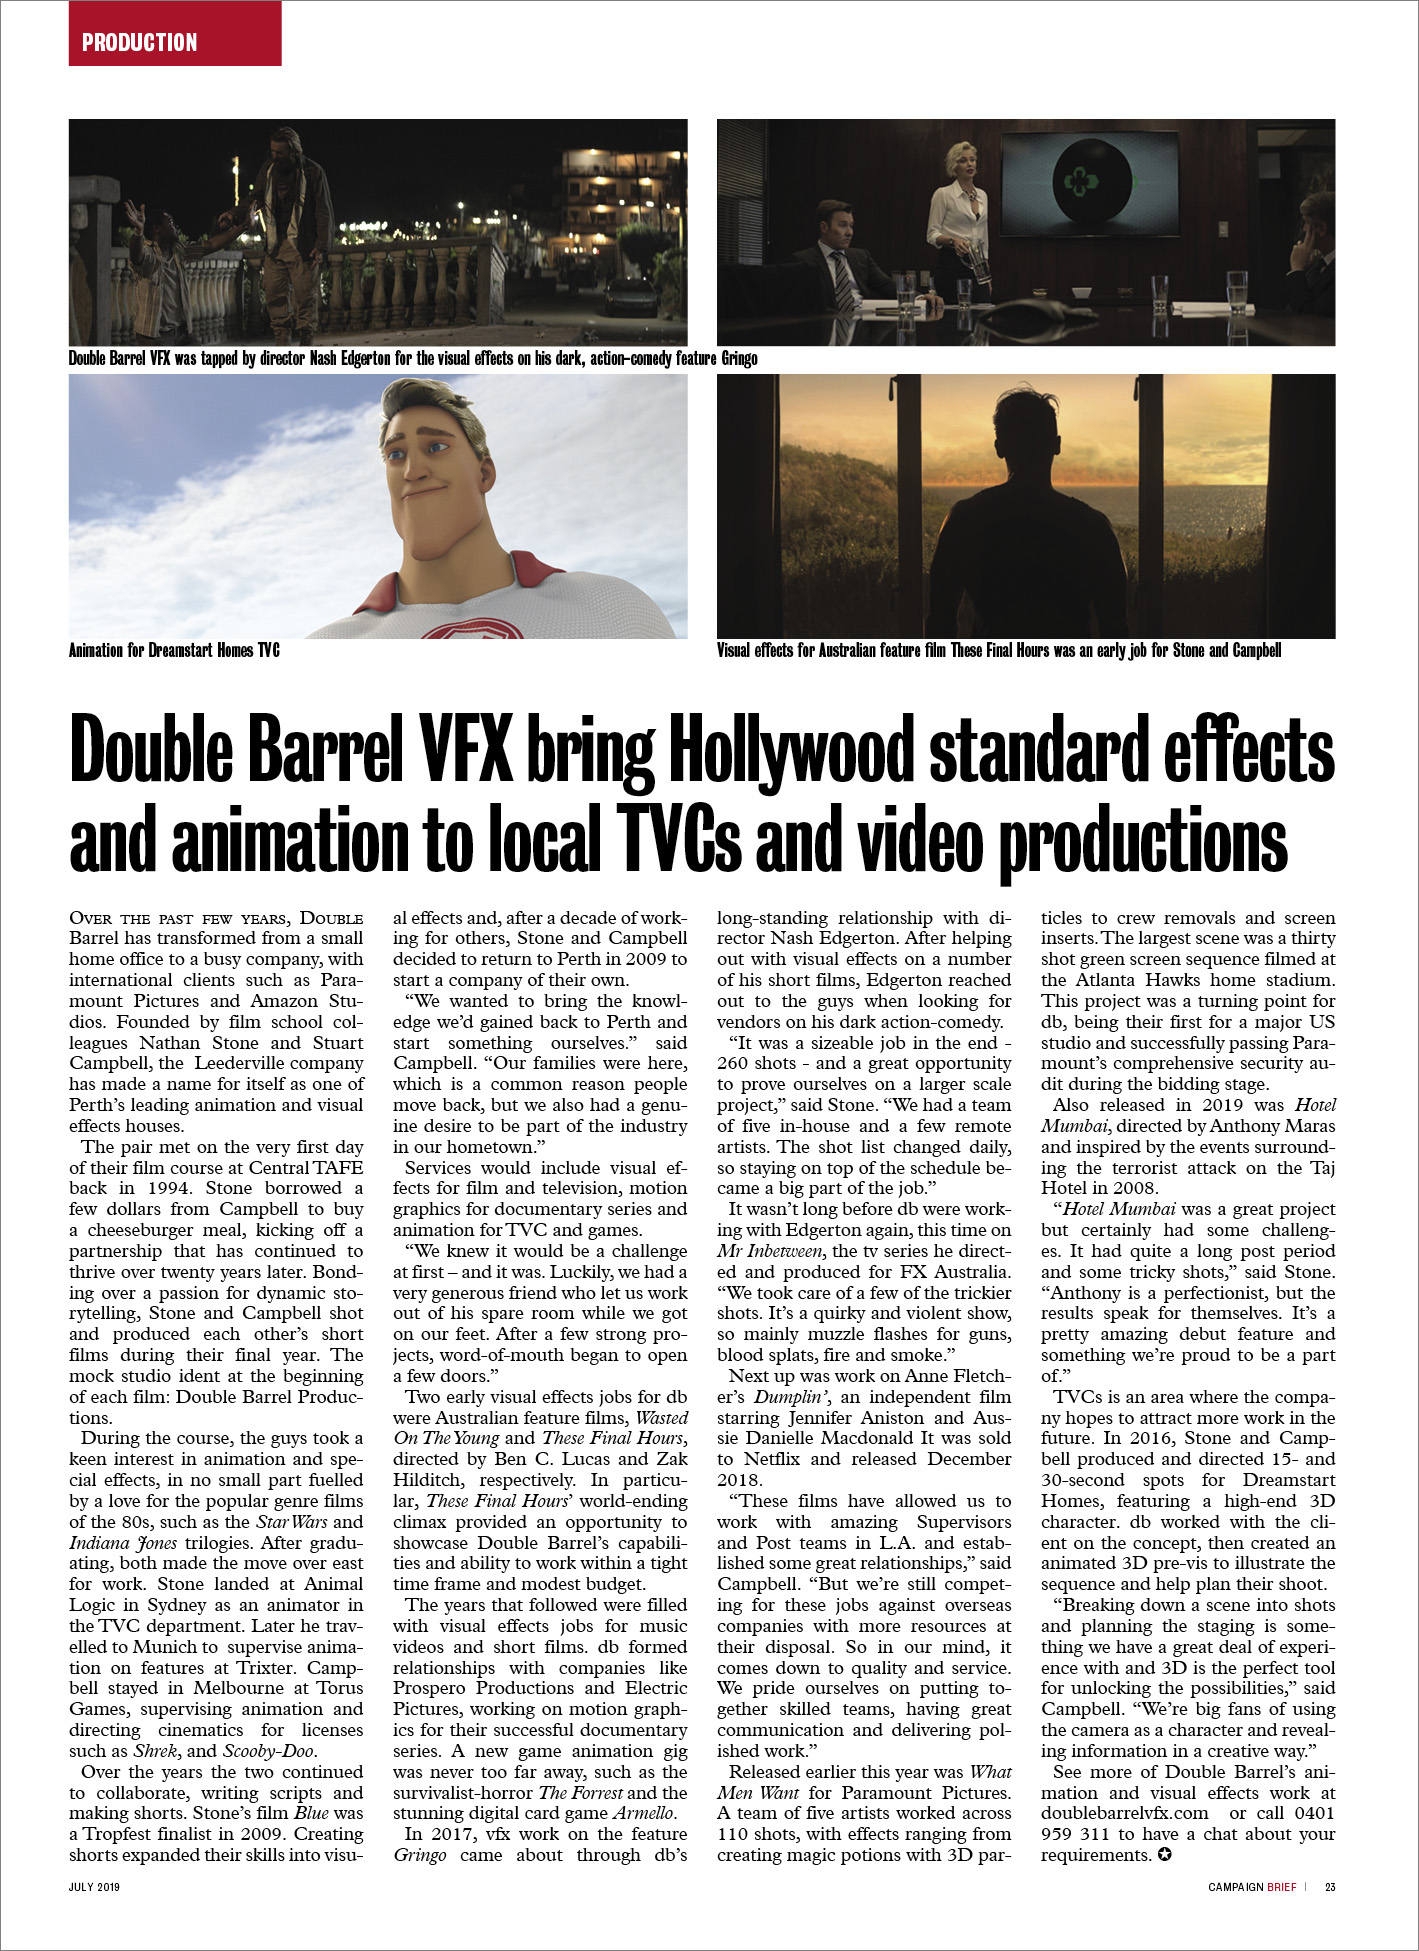 Double Barrel VFX brings Hollywood standard visual effects and animation to local production